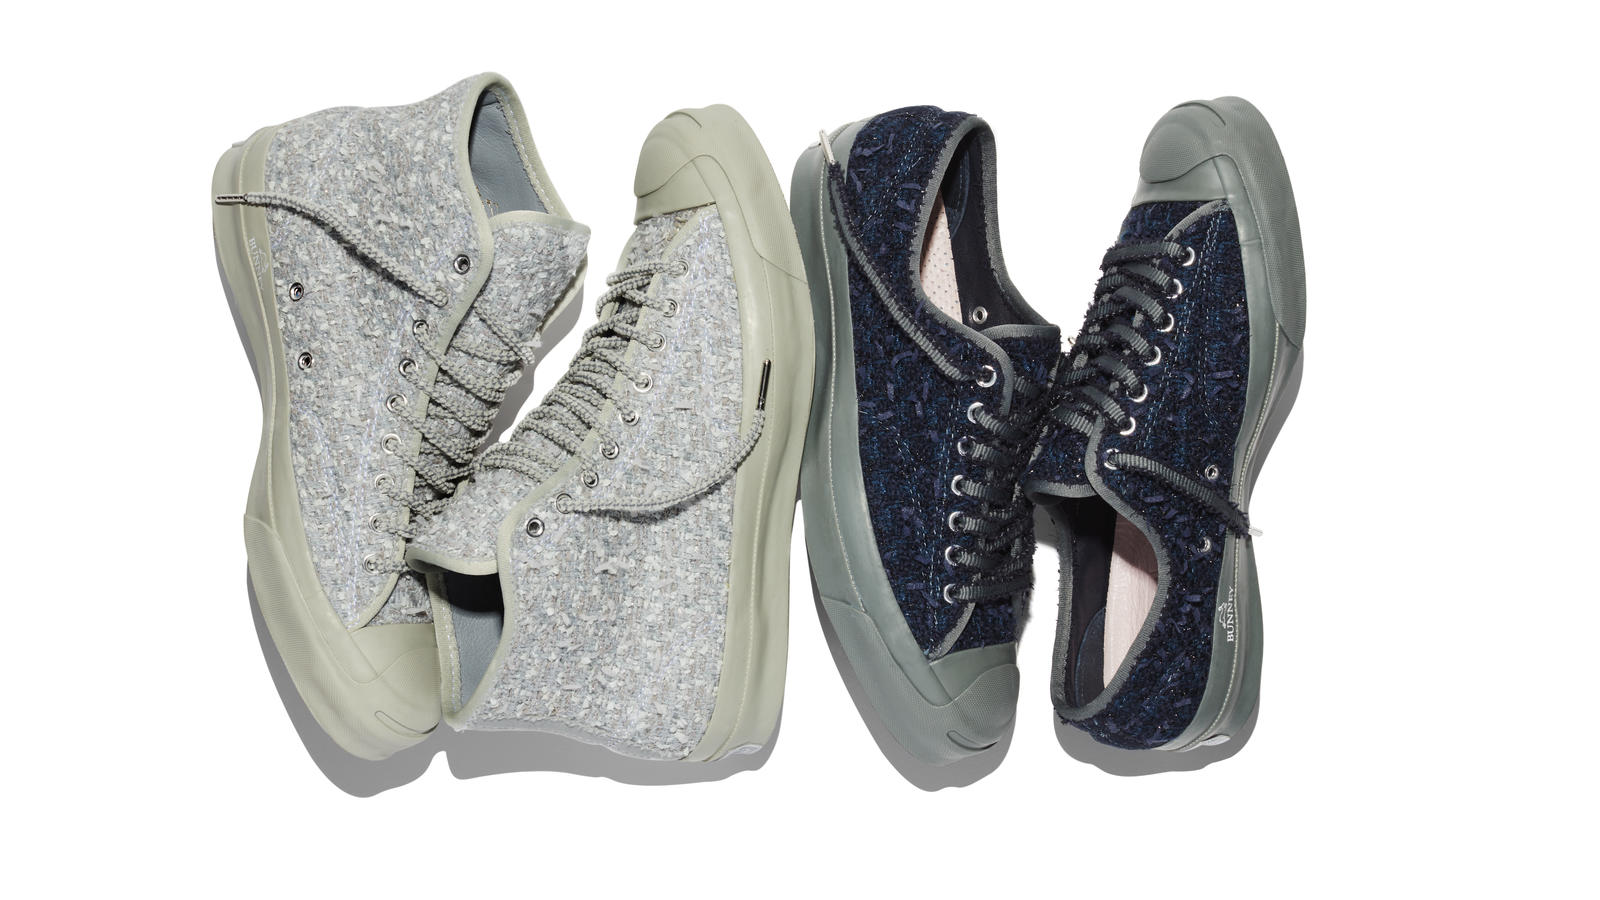 b3ff5535cc8f The Converse Jack Purcell Signature x Bunney Collection - Nike News